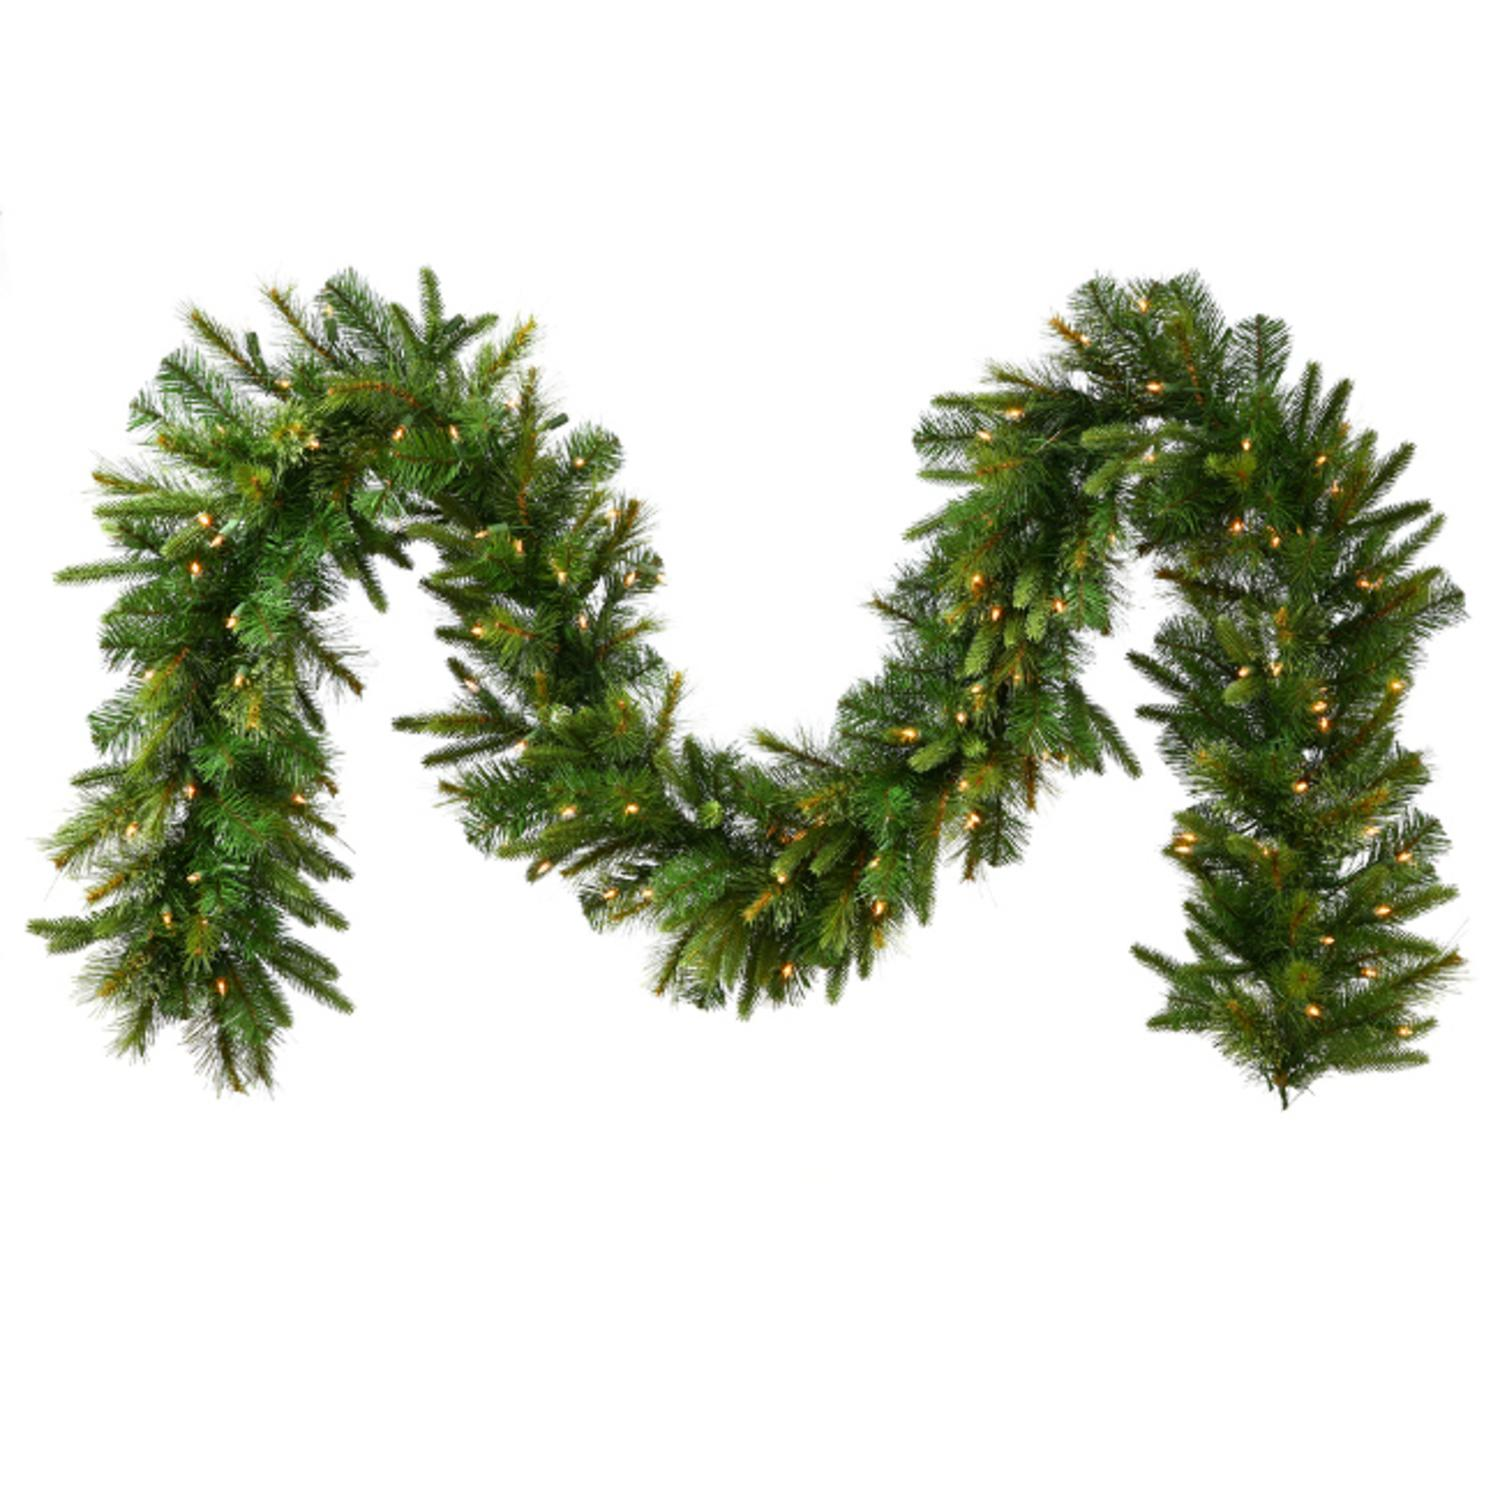 """9' x 14"""" Pre-Lit Mixed Pine Cashmere Artificial Christmas Garland - Clear Lights"""